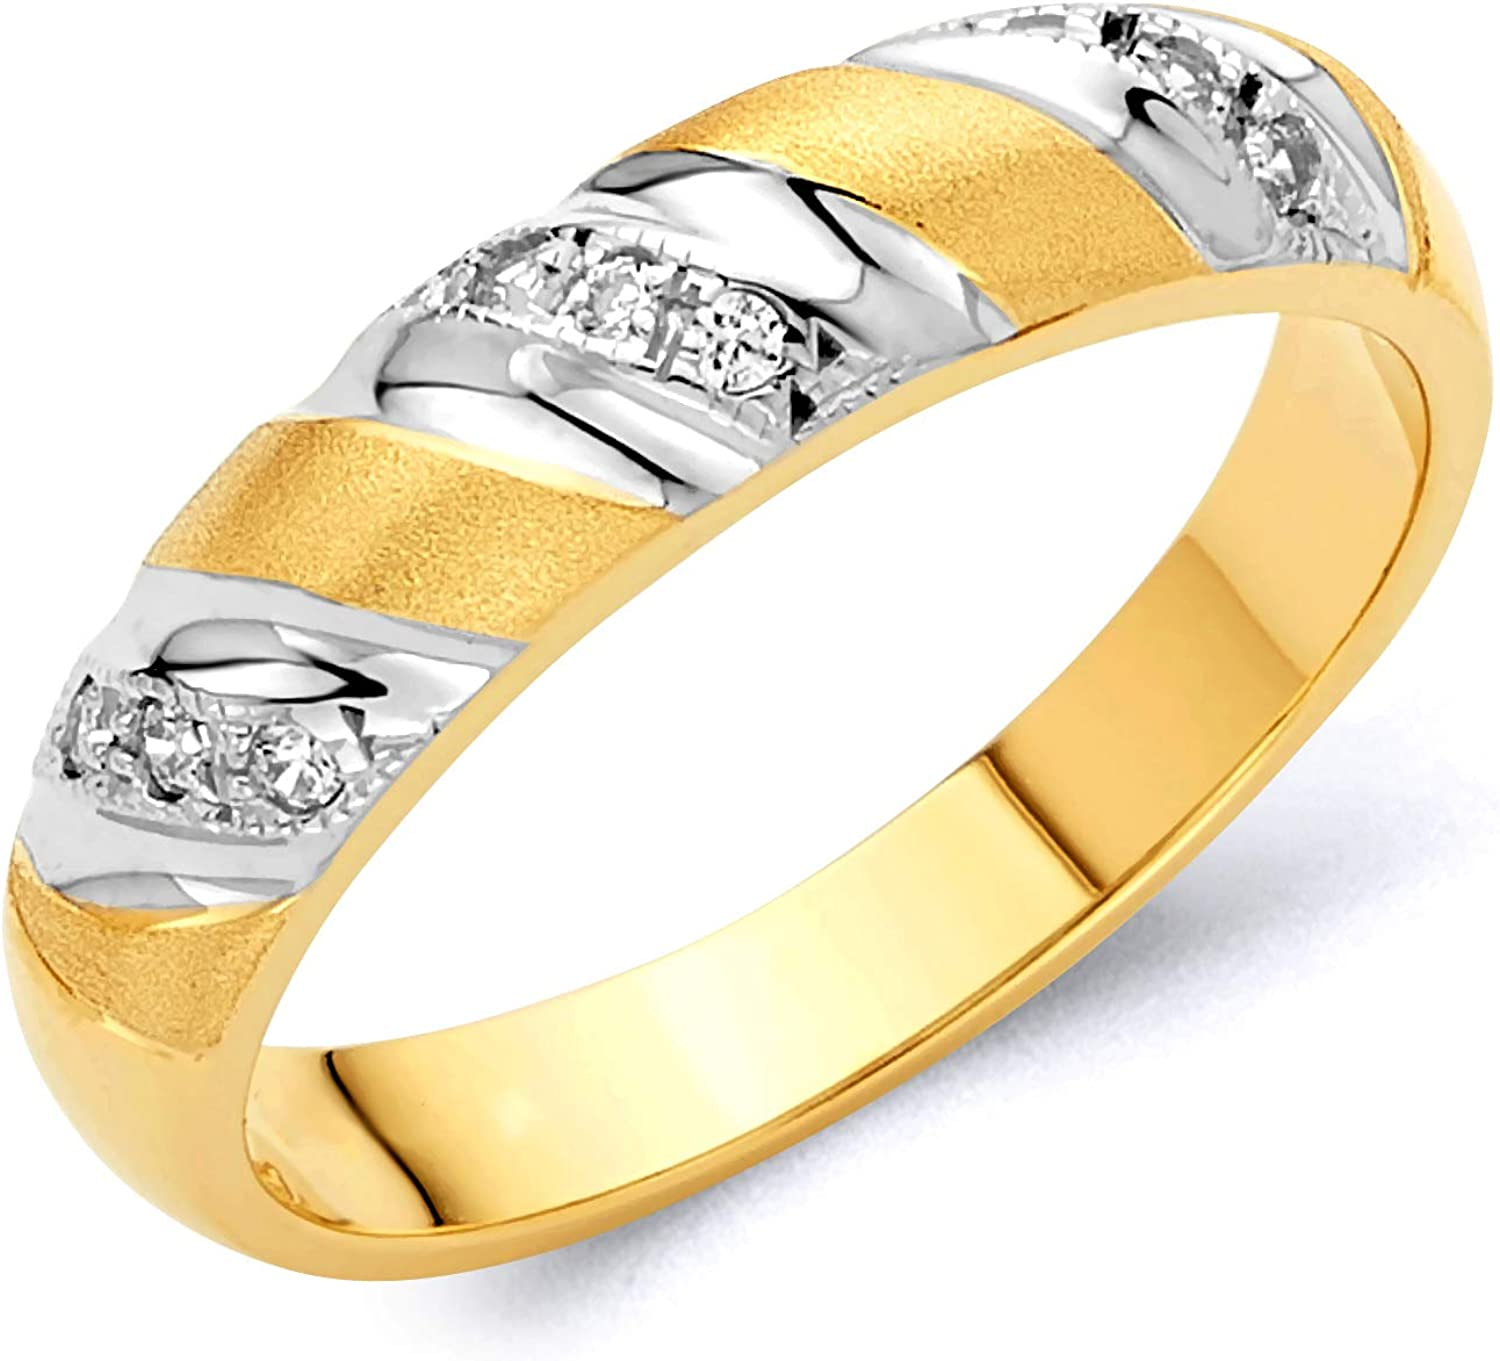 Wellingsale Mens Solid 14k Two 2 Tone White and Yellow Gold Polished CZ Cubic Zirconia Wedding Band